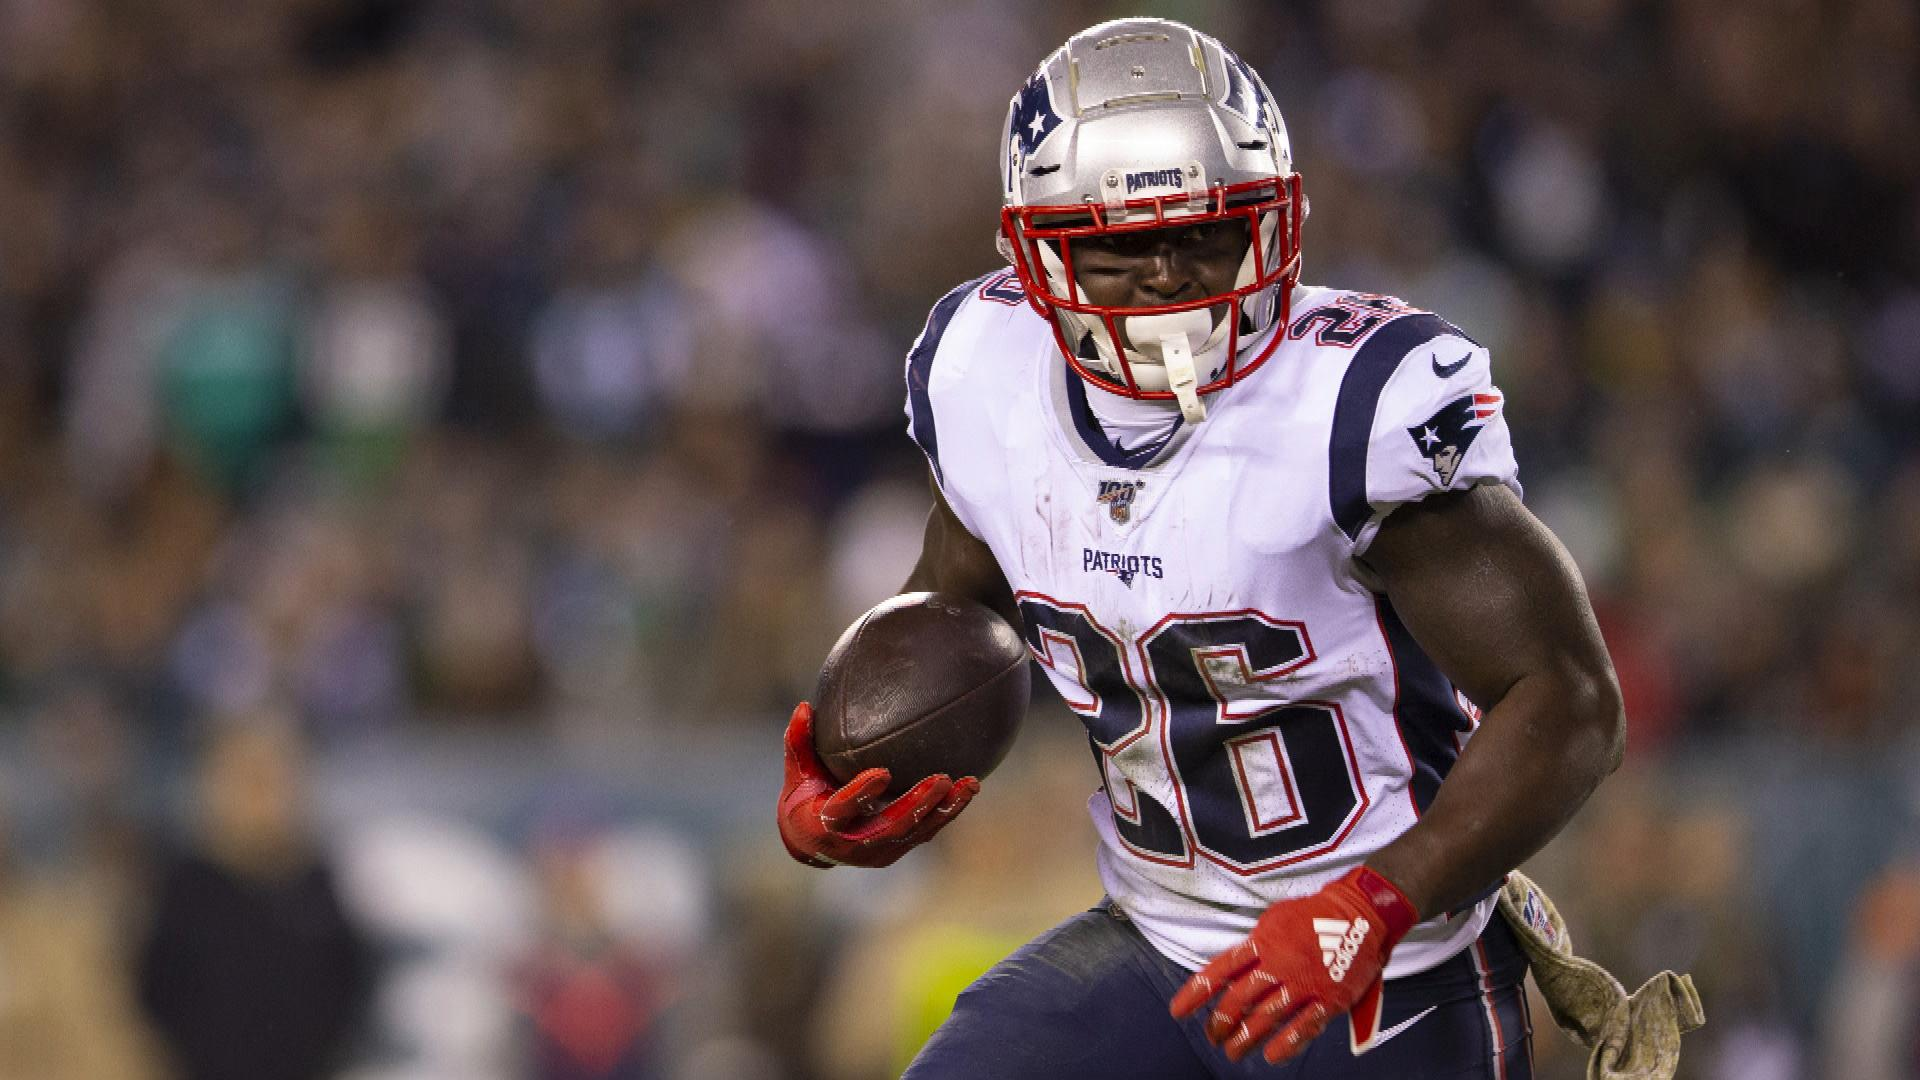 Patriots deep at RB as playoffs approach with Sony Michel, Rex